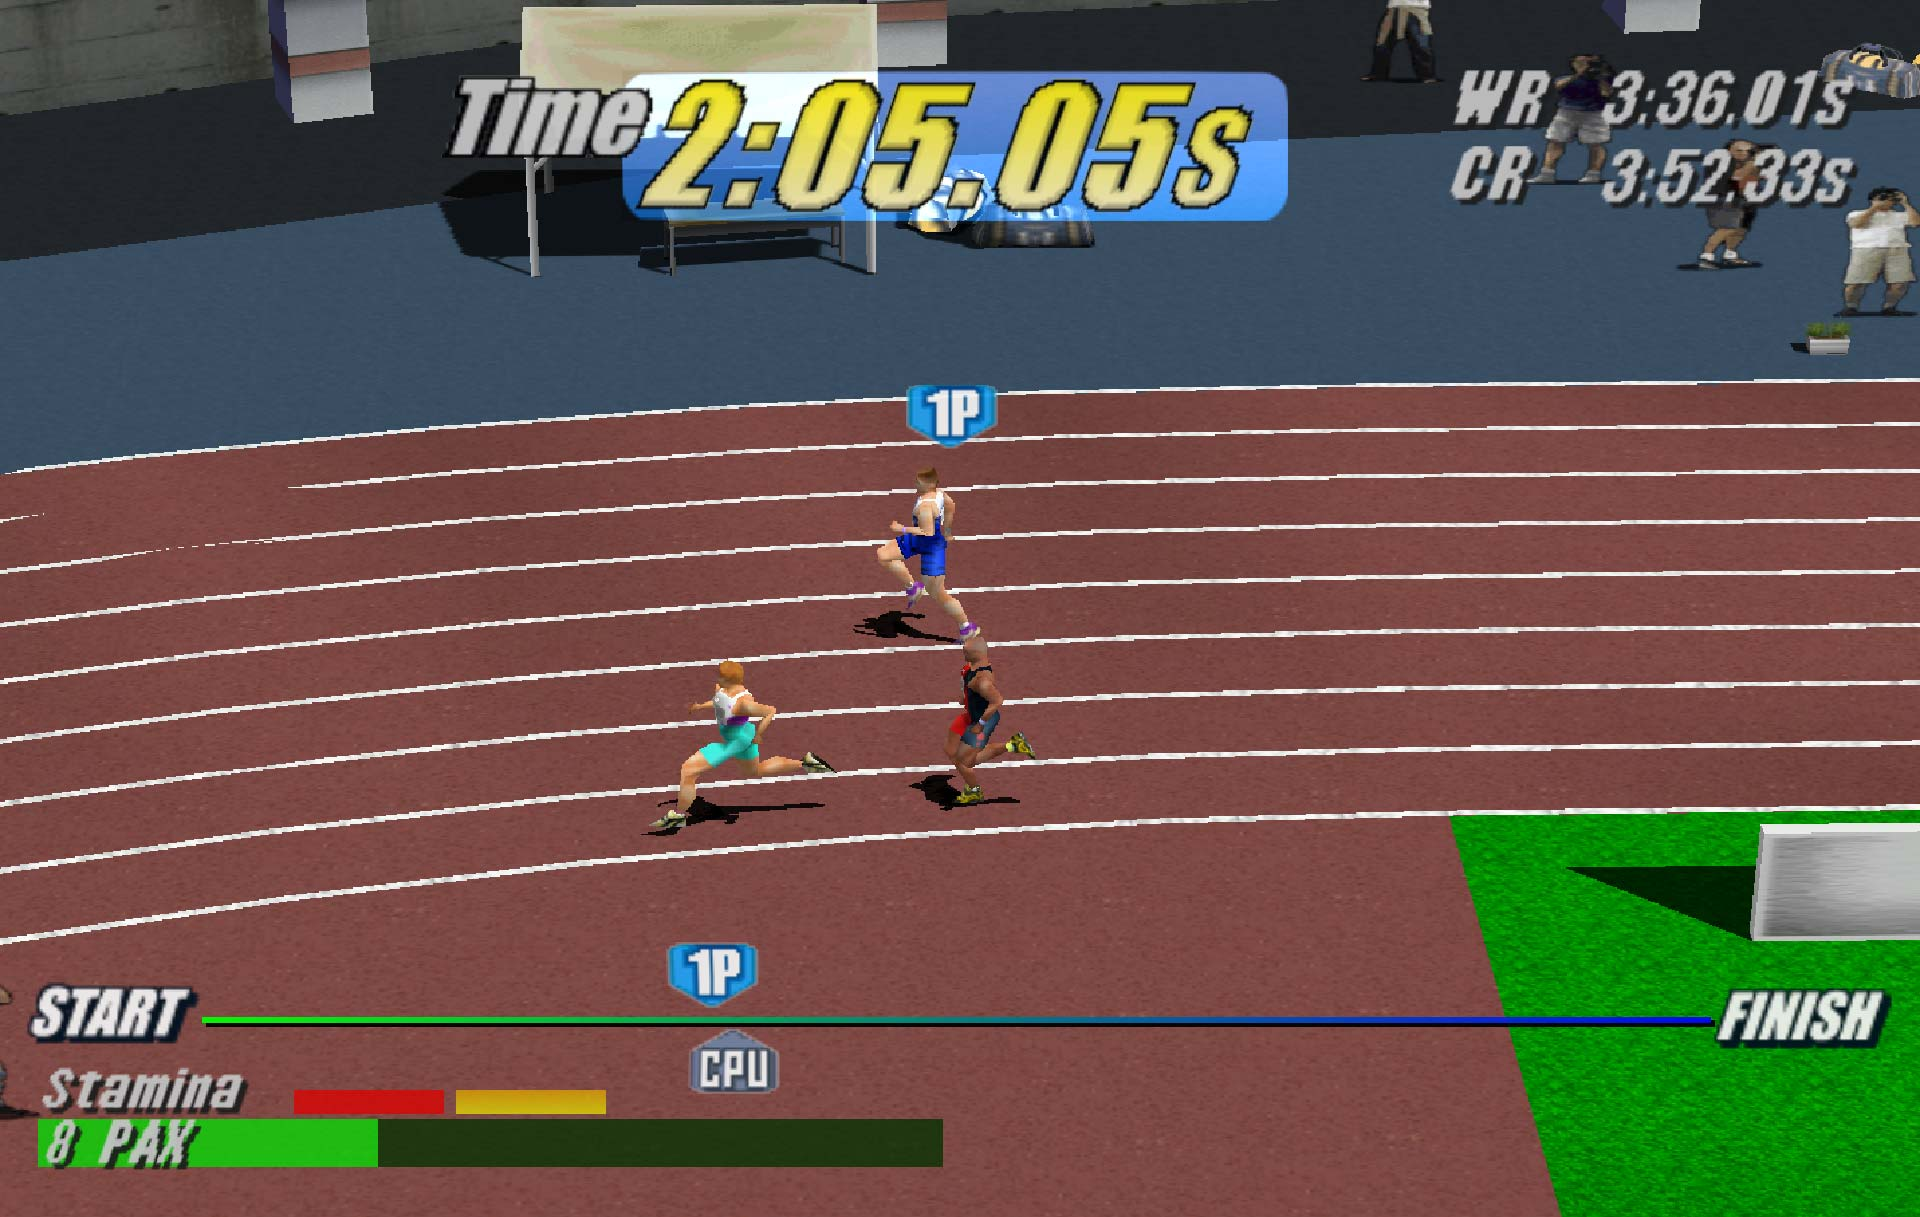 Virtua Athlete 2K 1500 metres